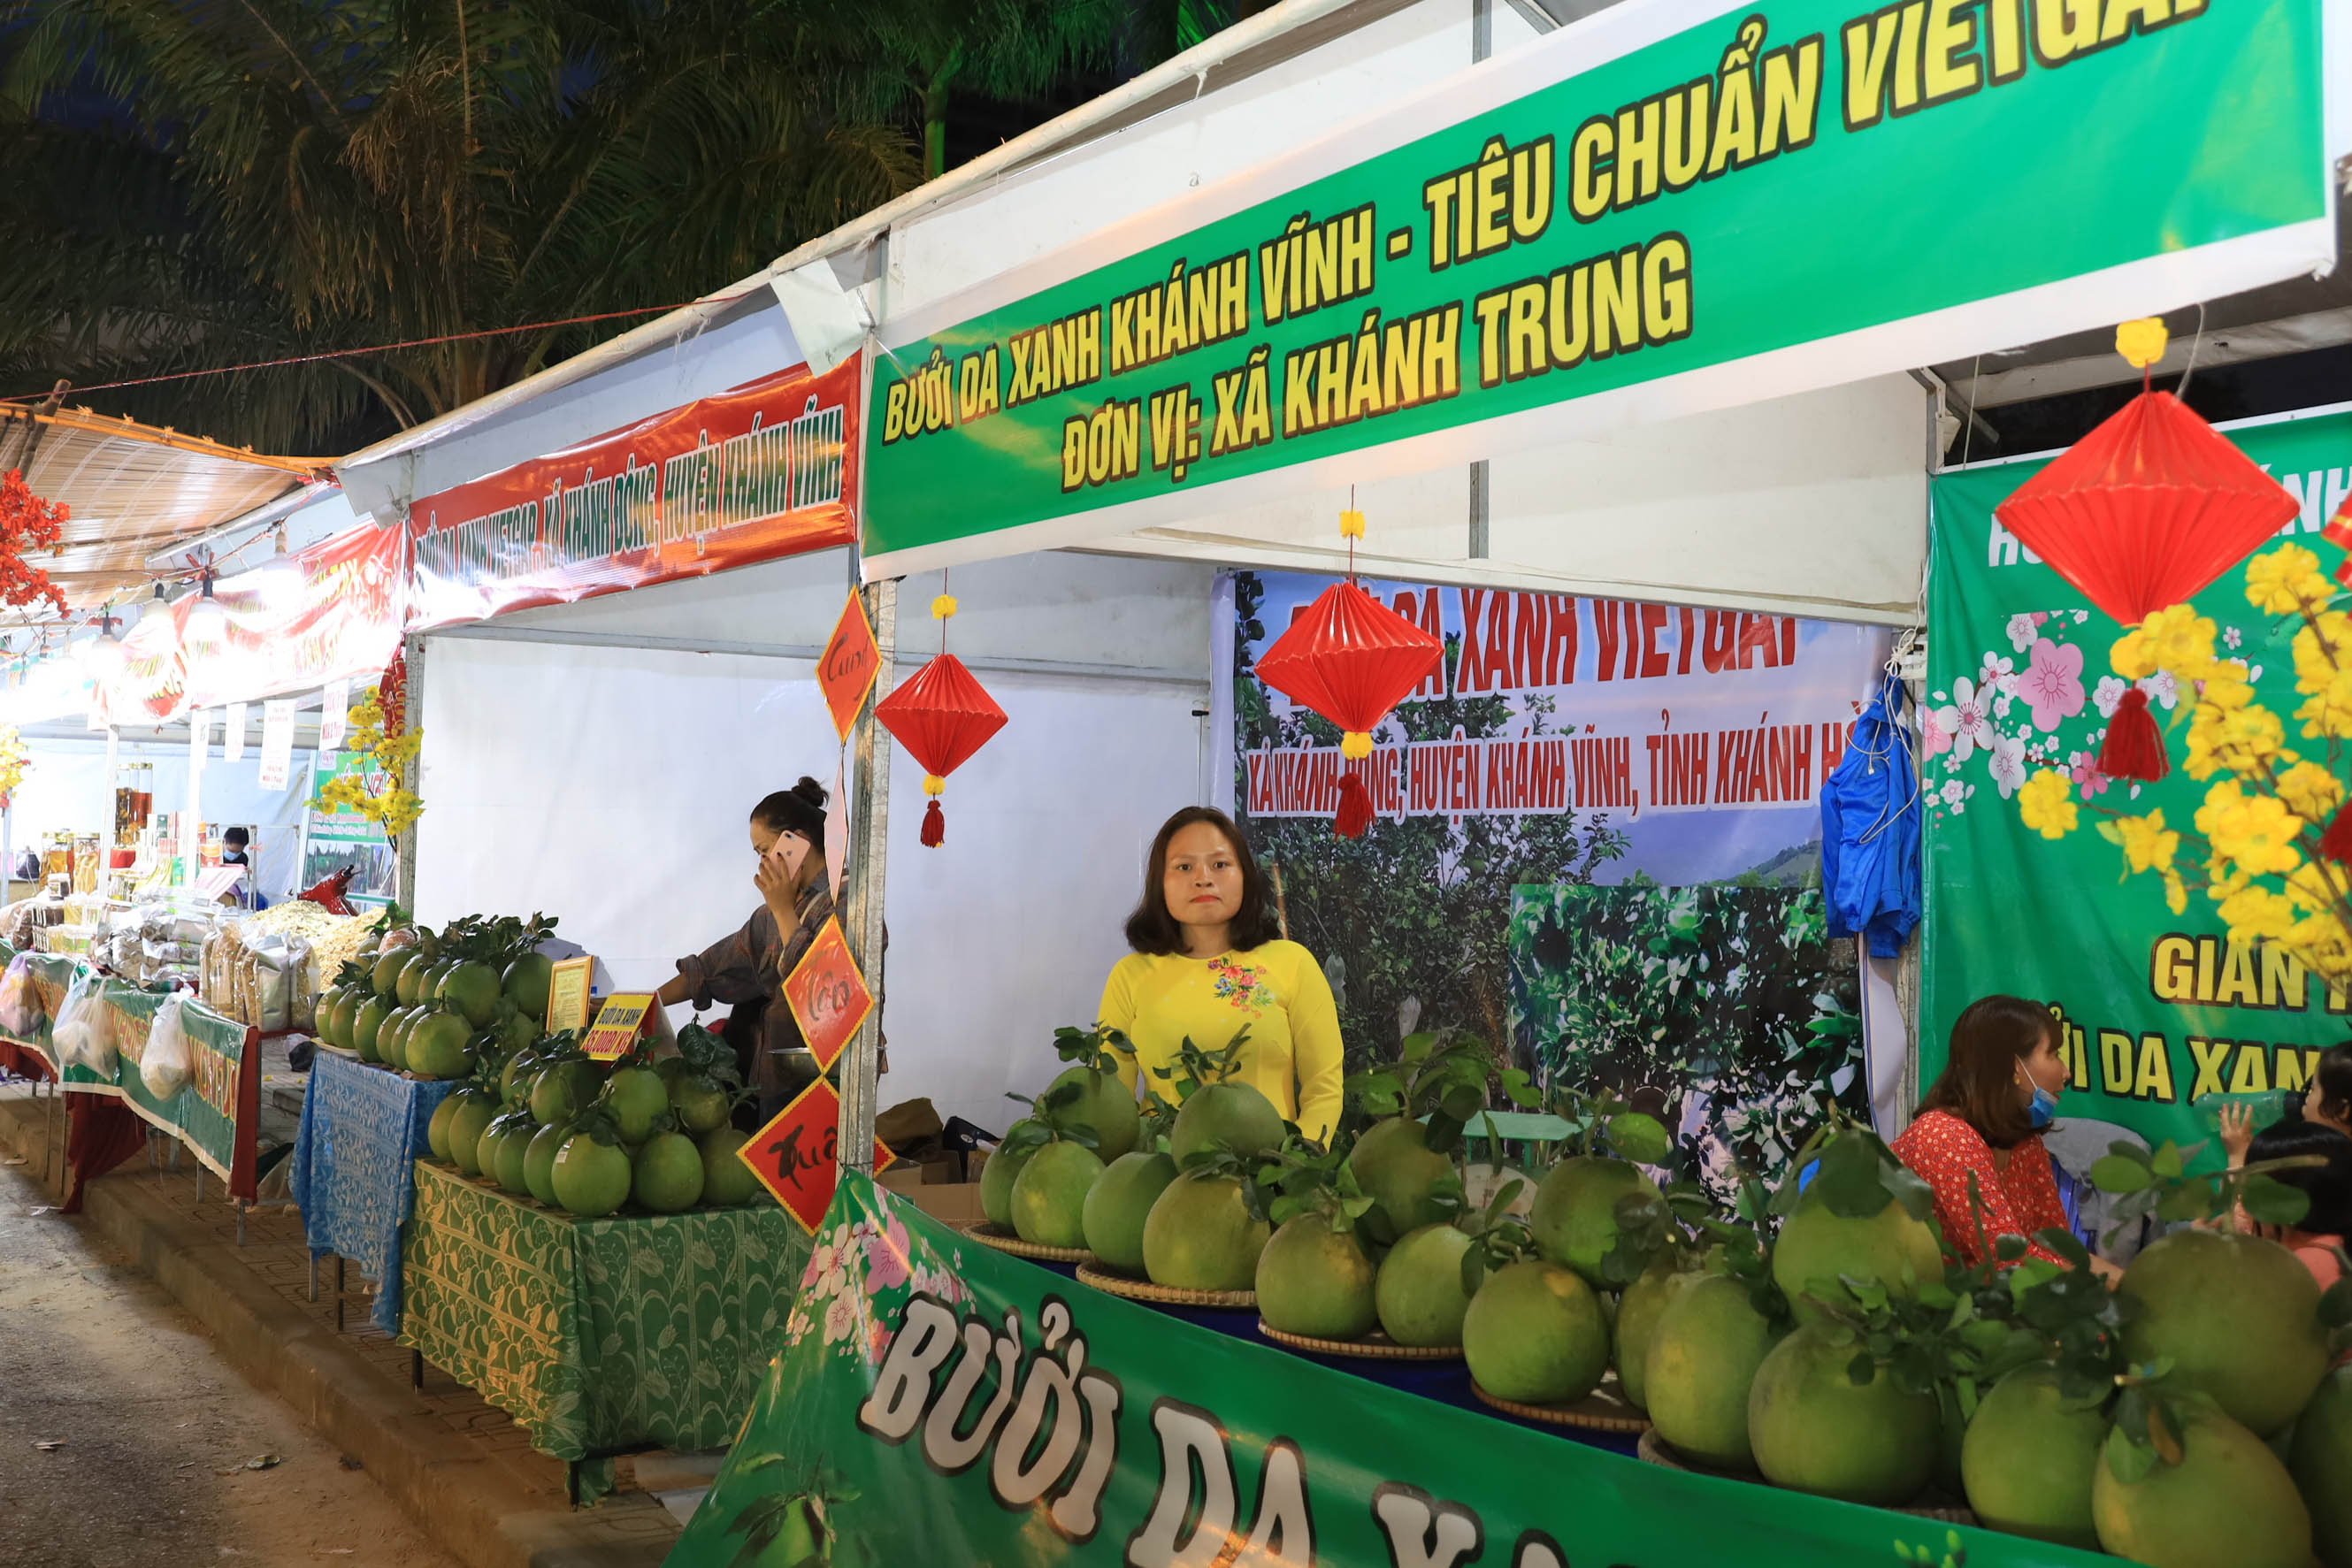 Stalls selling agricultural products and handicrafts